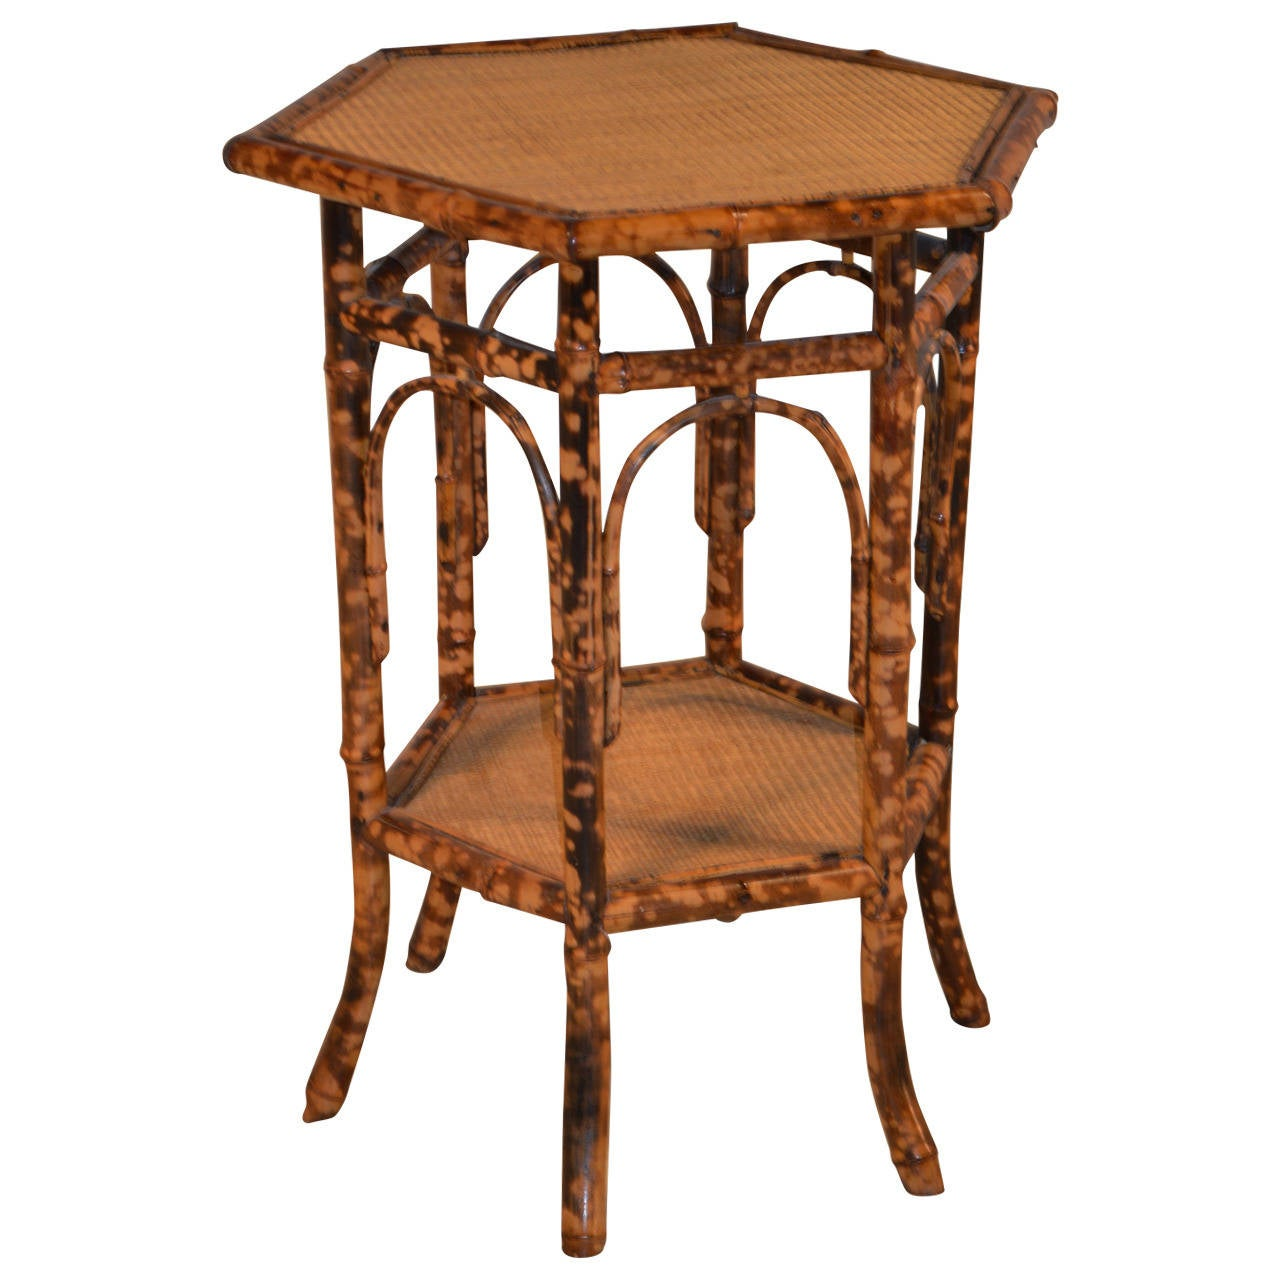 19th century french bamboo side table at 1stdibs for Bamboo side table